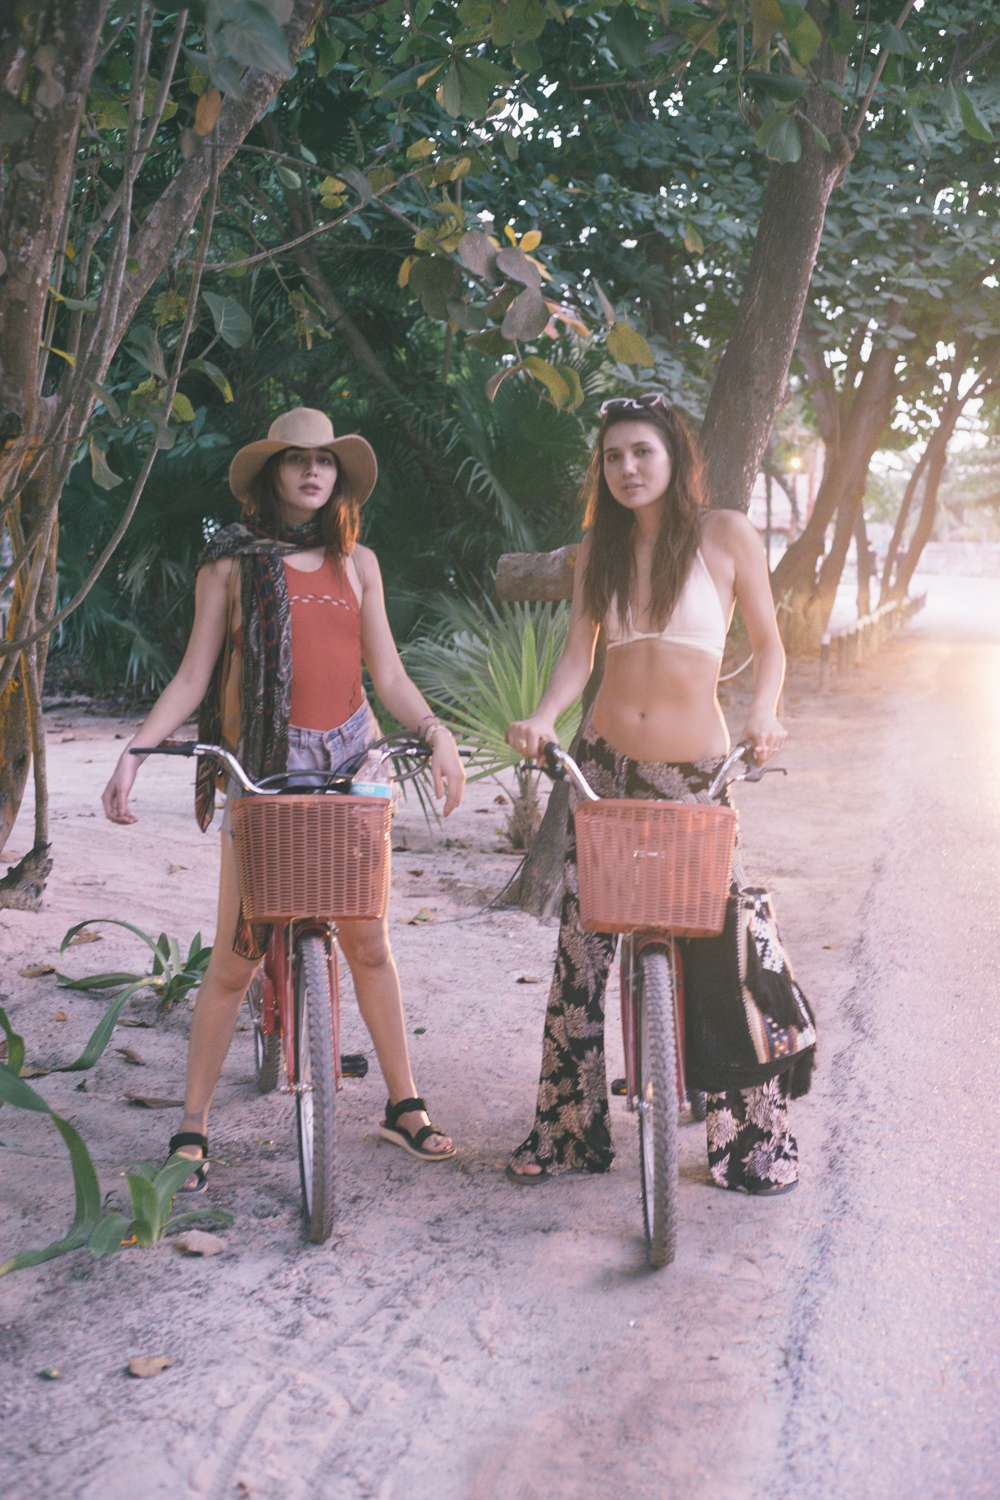 Natalie and Dylana Suarez pose on bikes Tulum Mexico.